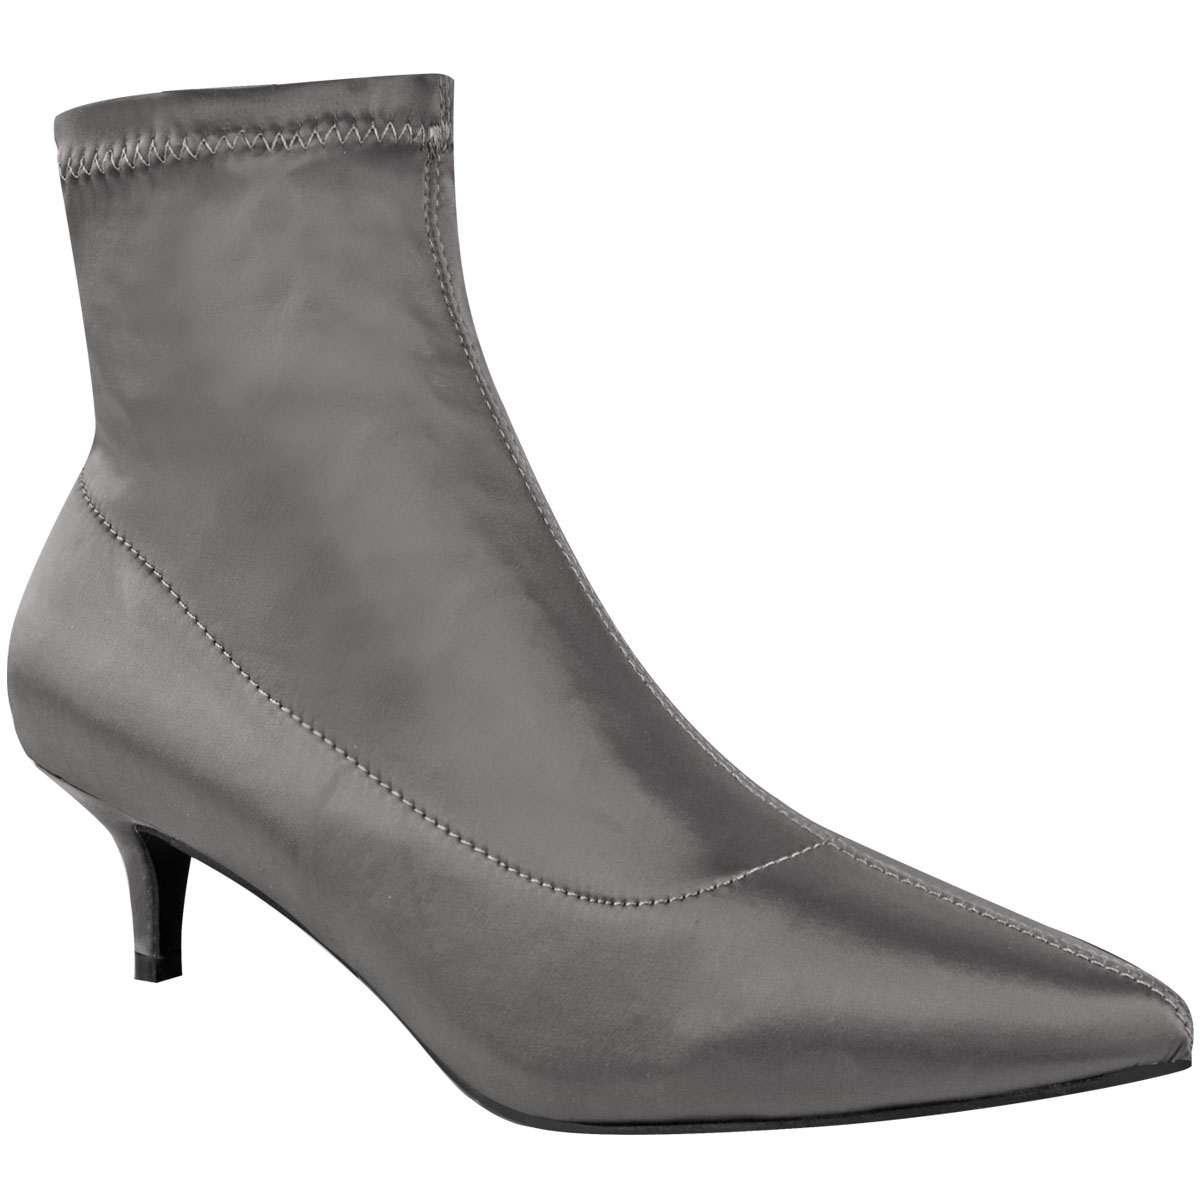 Ladies Womens Low Kitten Heel Ankle Boots Stretch Satin